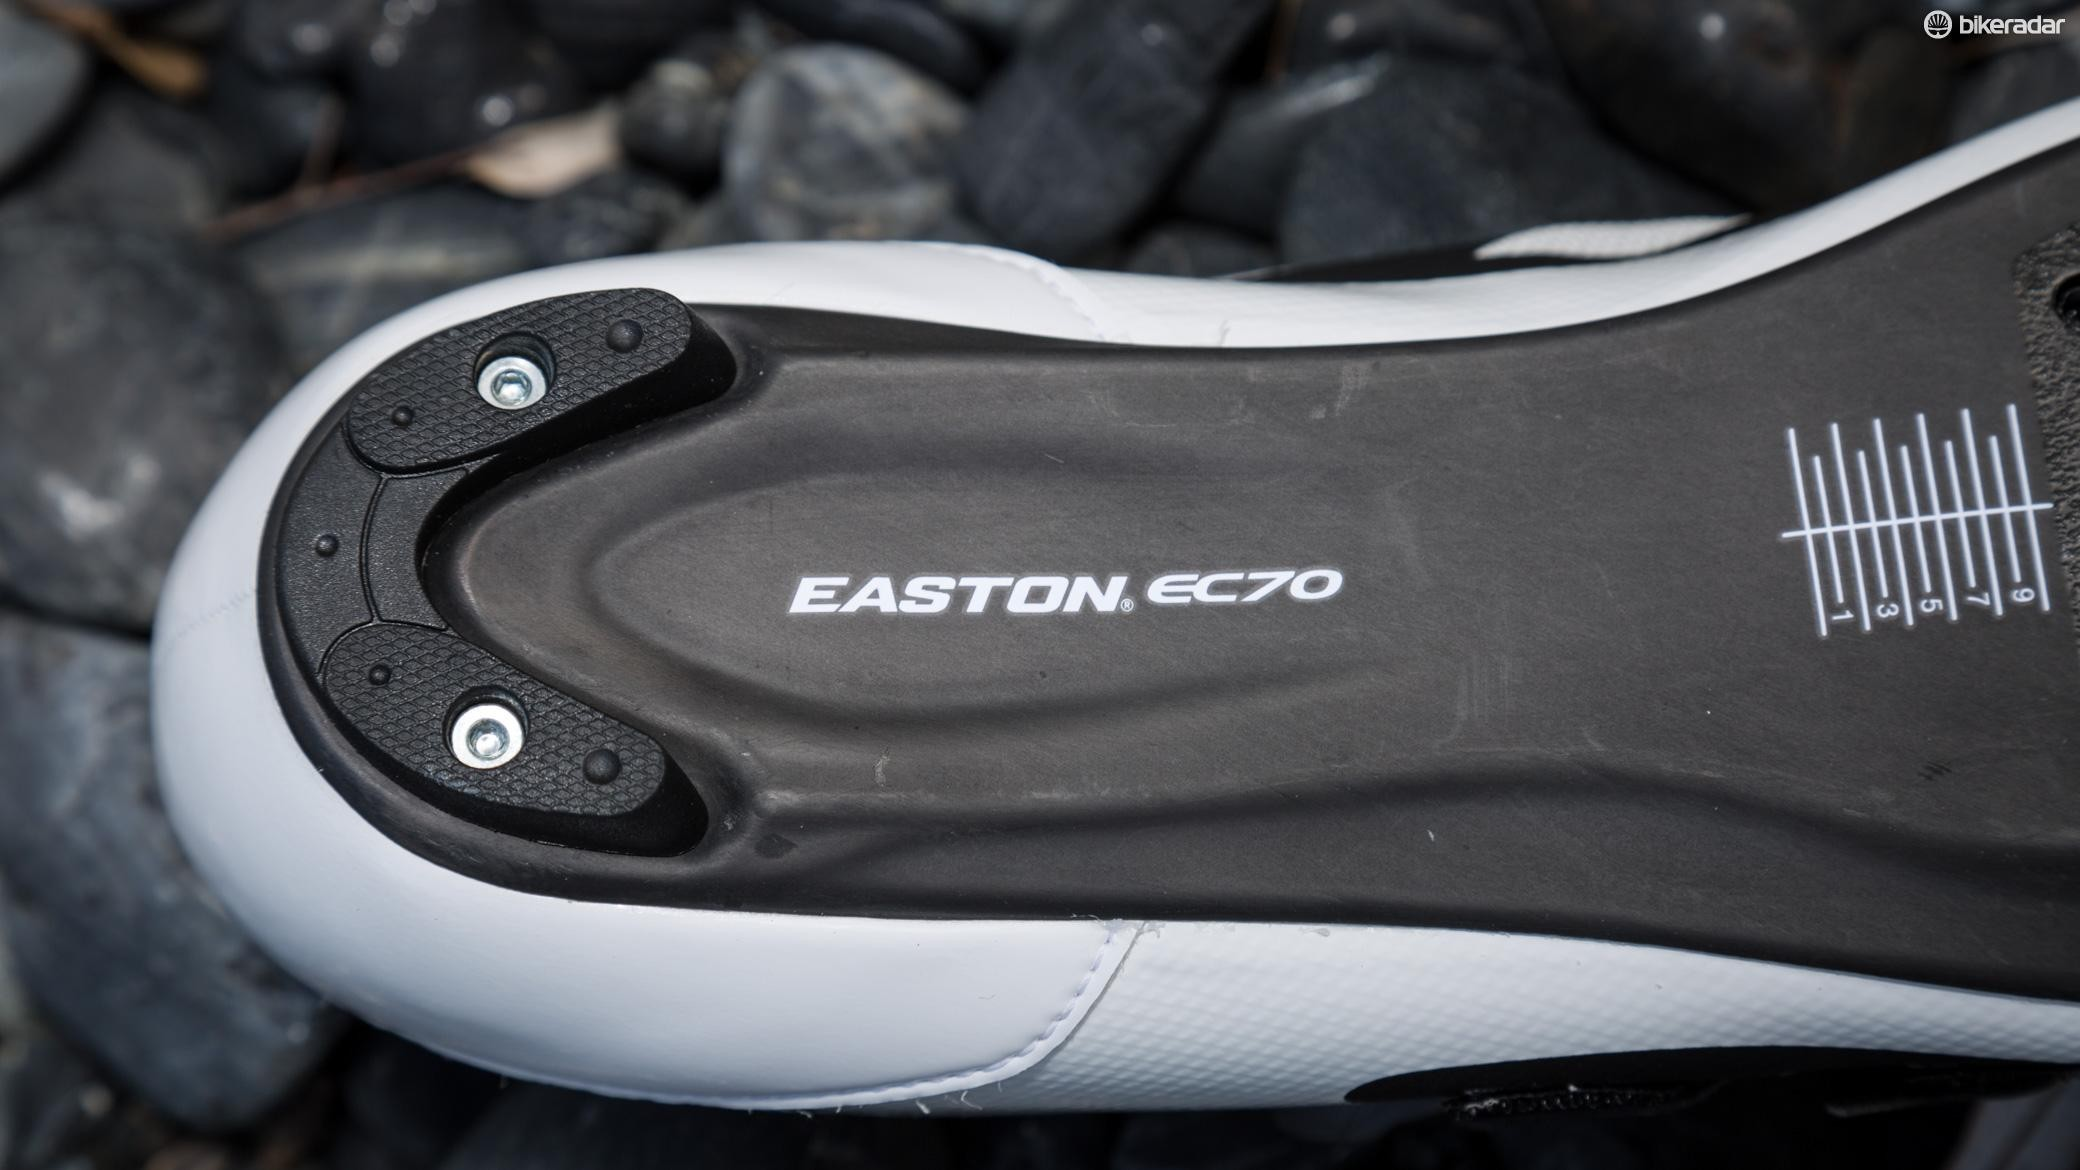 The EC70 plate is the brand's second tier carbon sole. Even still, it's plenty stiff